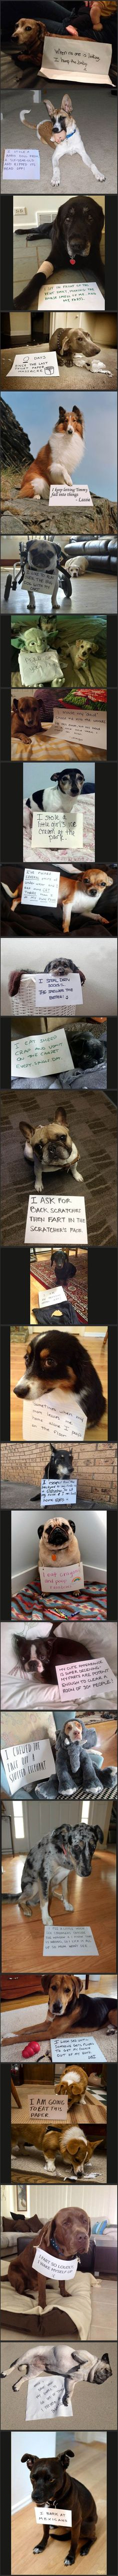 The best of dog shaming- Dingo and Obi might be my favorite